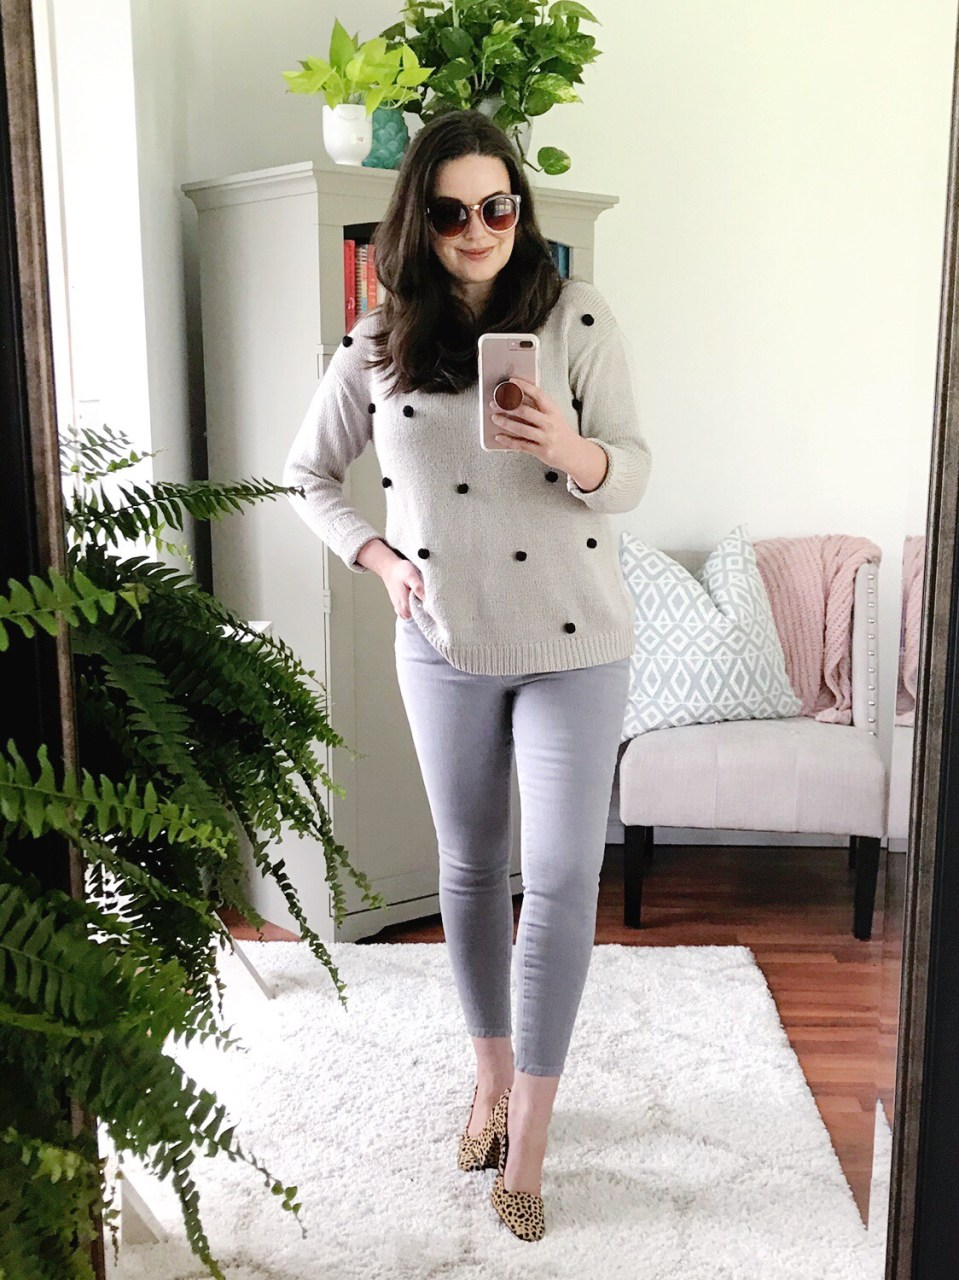 Style blogger wearing gray over-sized sweater with black pom-pom embellishments, gray skinny jeans and TOPSHOP leopard pumps.